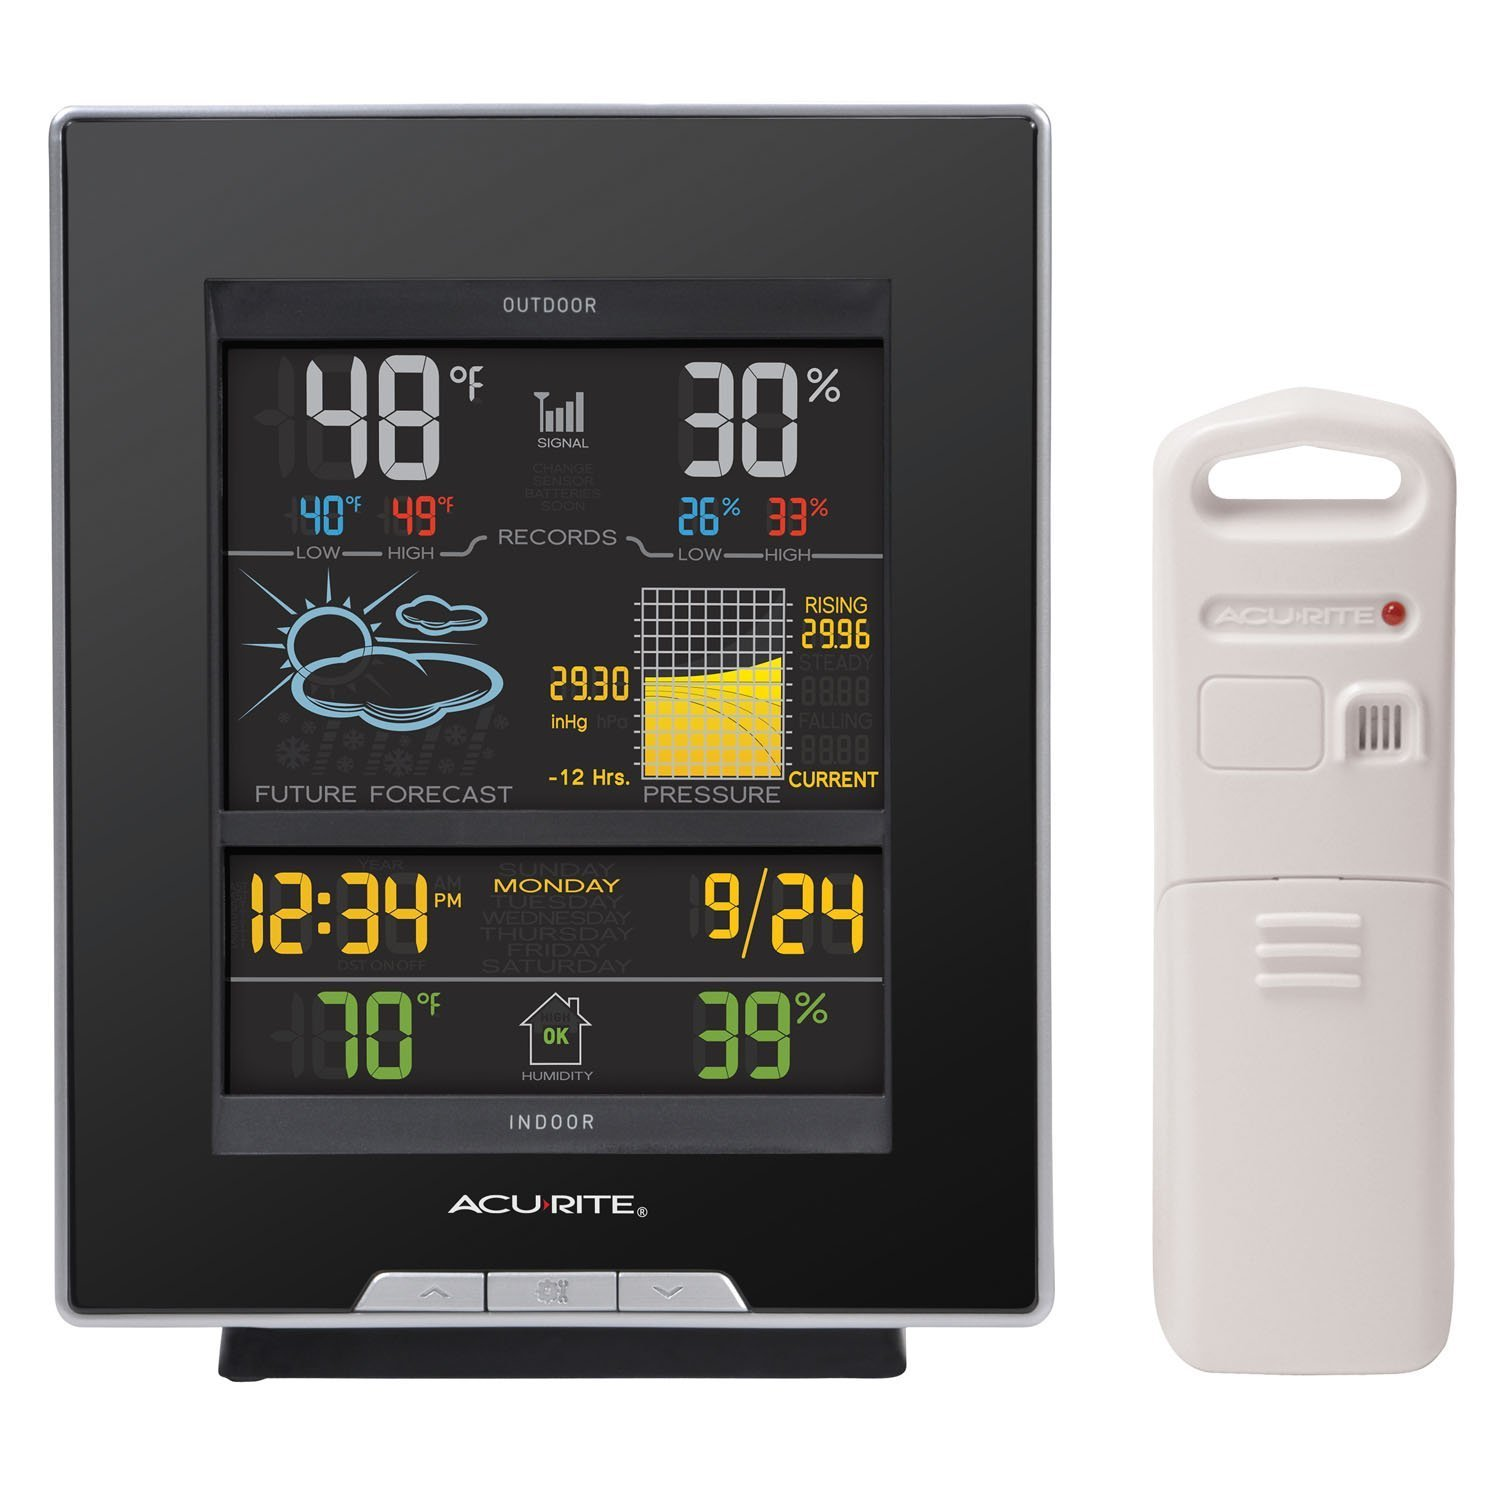 AcuRite 02008A1 Color Weather Station with Forecast, Temperature, Humidity, Barometric Pressure, Intelli-Time Clock [並行輸入品] B016BYW8RG